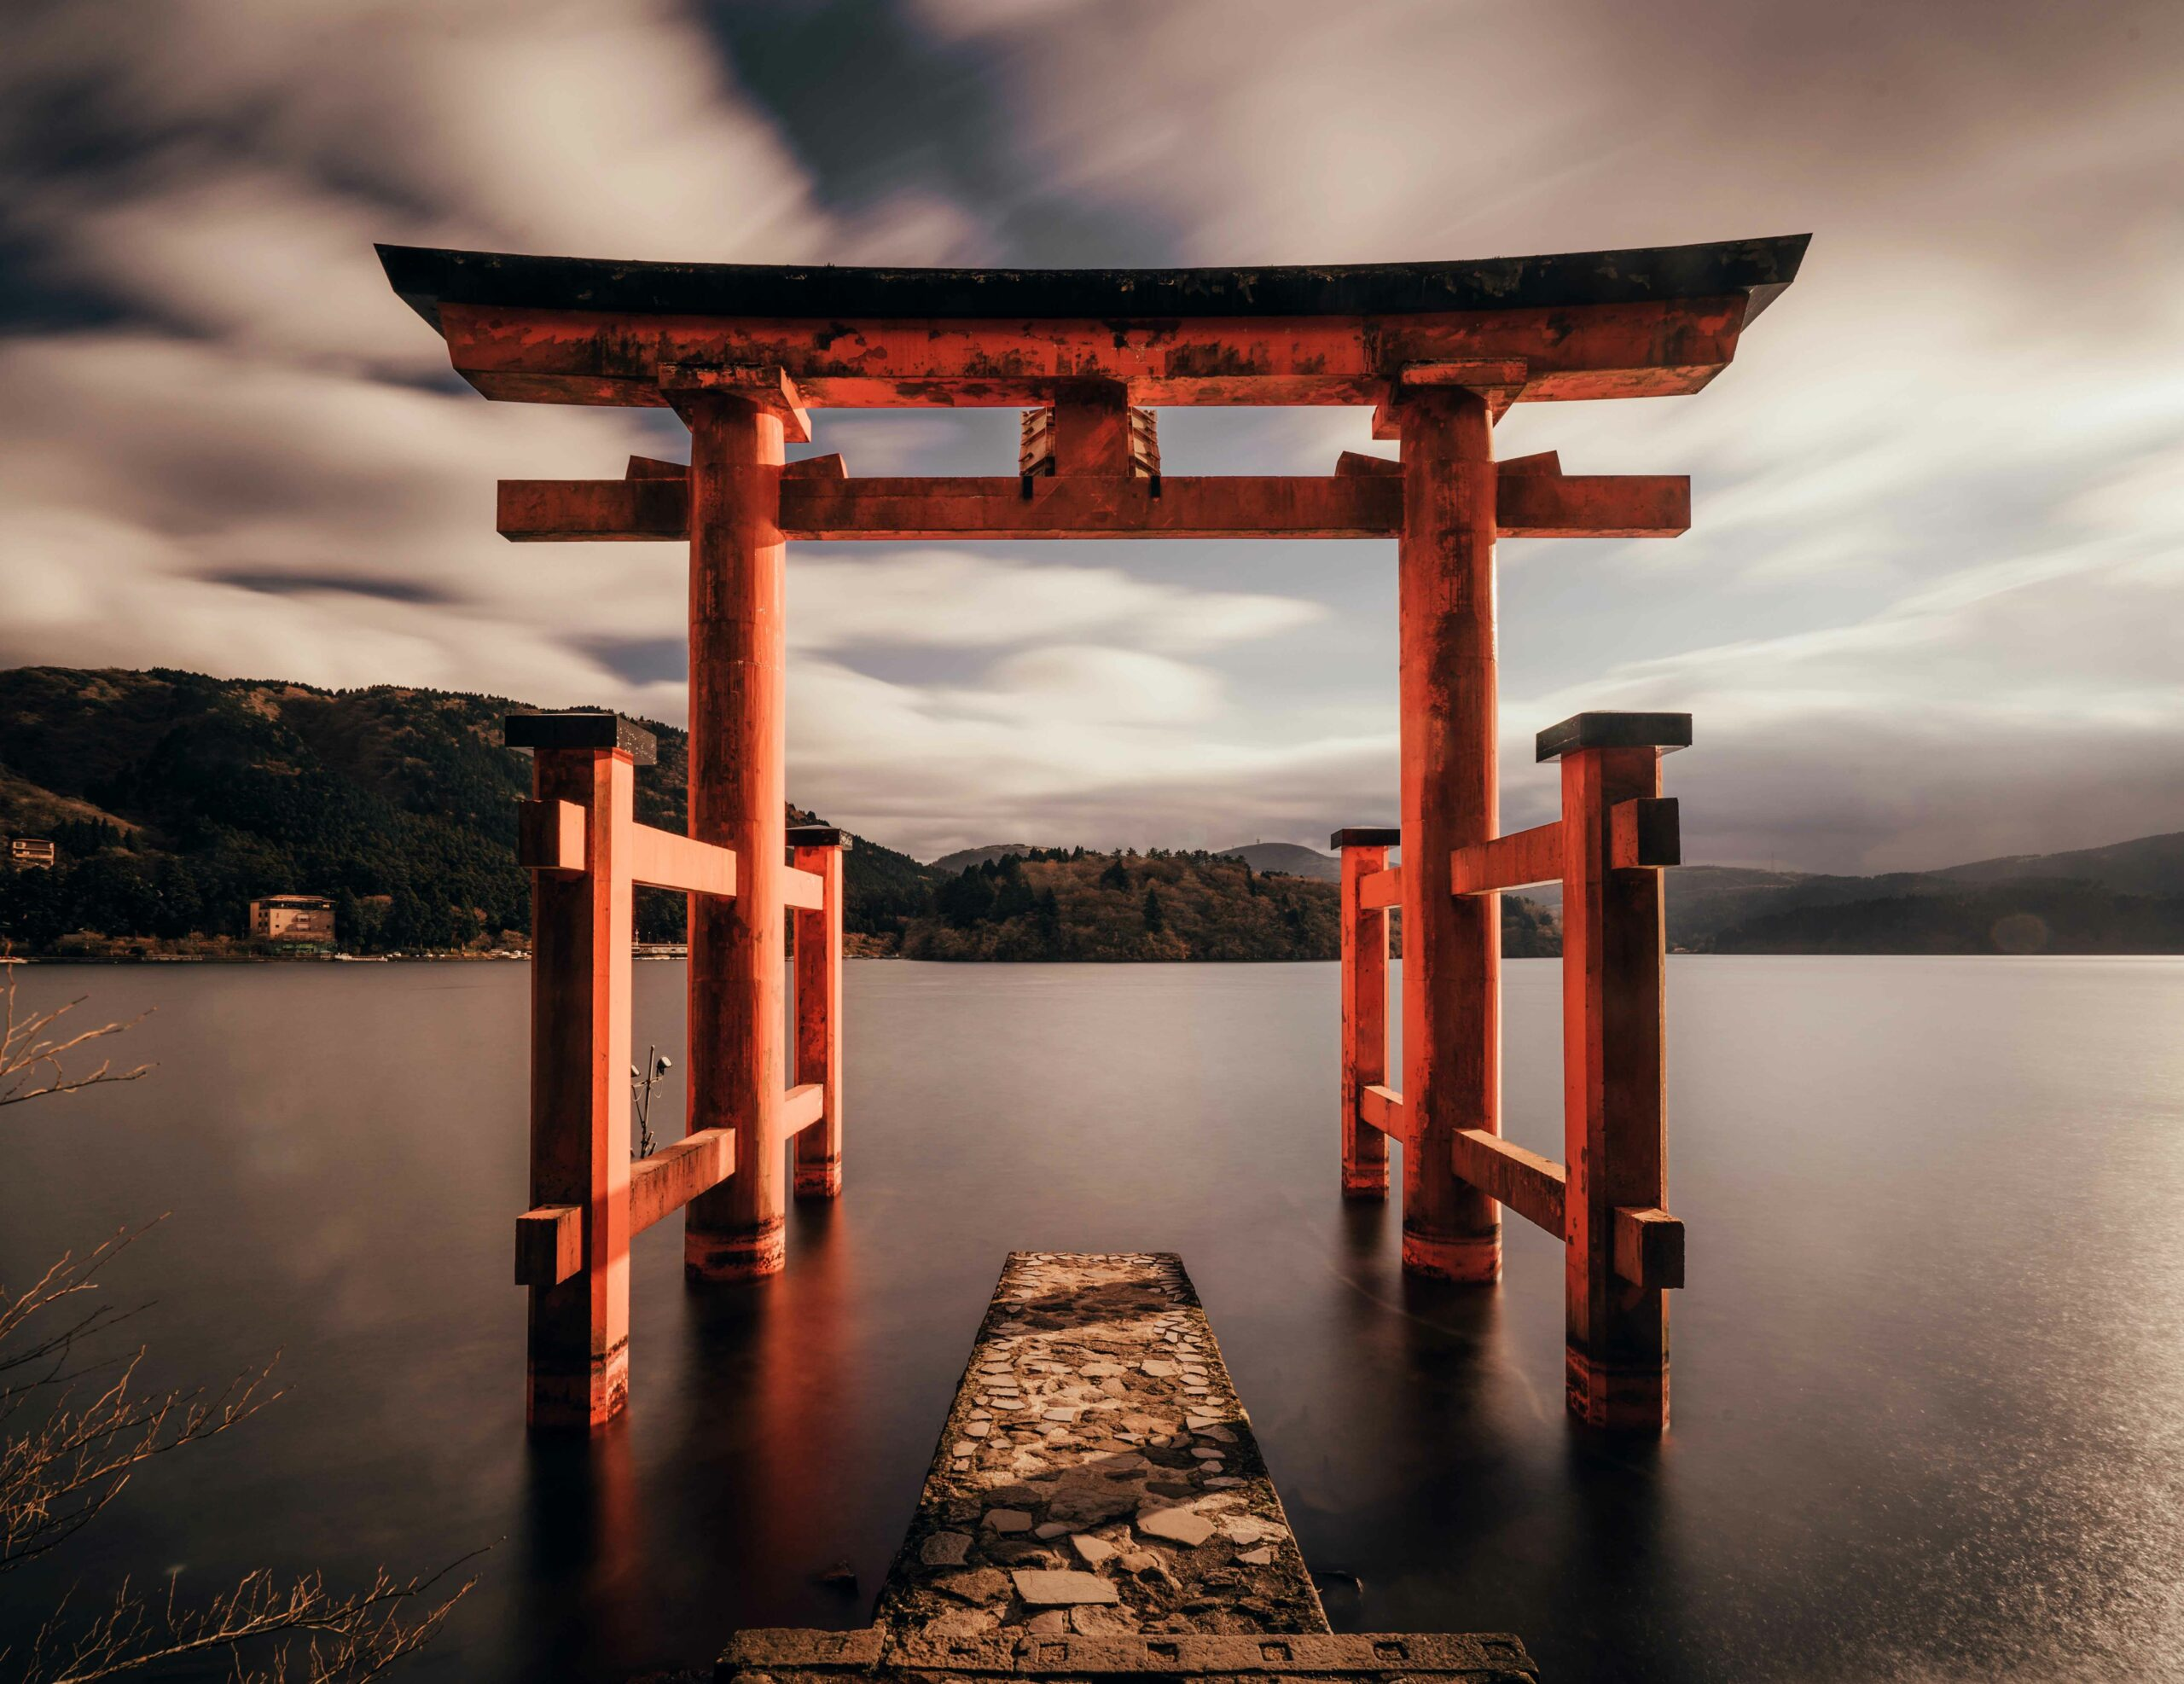 The Hakone Shrine is a Japanese Shinto shrine on the shores of Lake Ashi in the town of Hakone